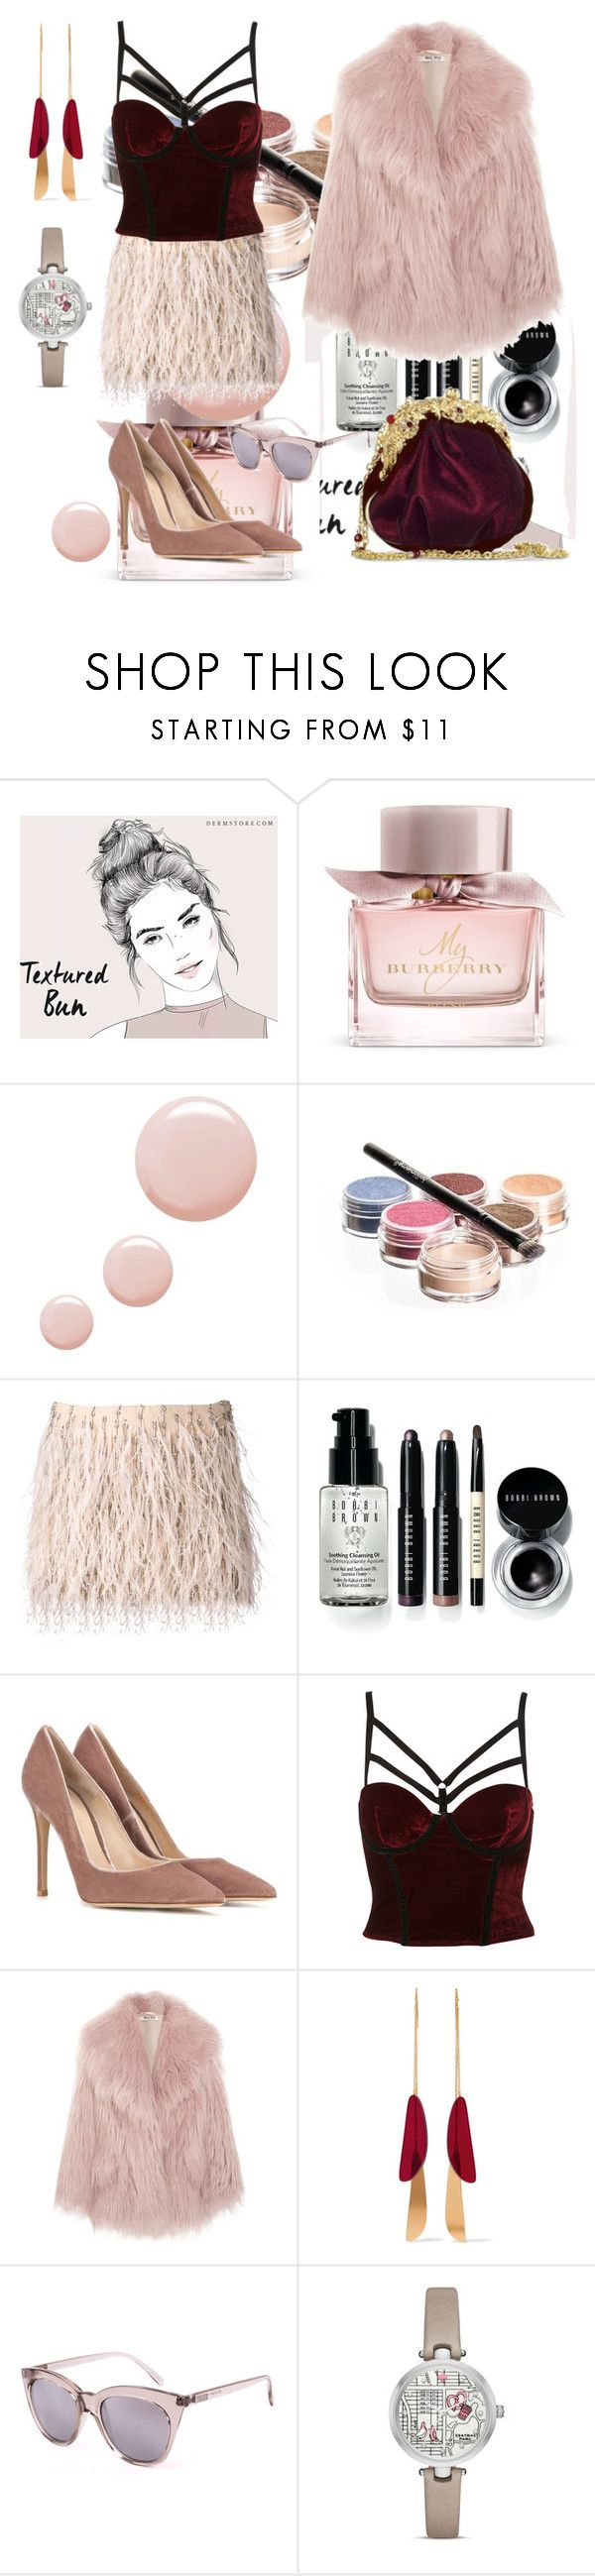 """""""Sin título #1134"""" by na-ty-1 ❤ liked on Polyvore featuring Burberry, Topshop, Bellápierre Cosmetics, Haute Hippie, Bobbi Brown Cosmetics, Gianvito Rossi, Maddalena Marconi, Miu Miu, Isabel Marant and Le Specs"""